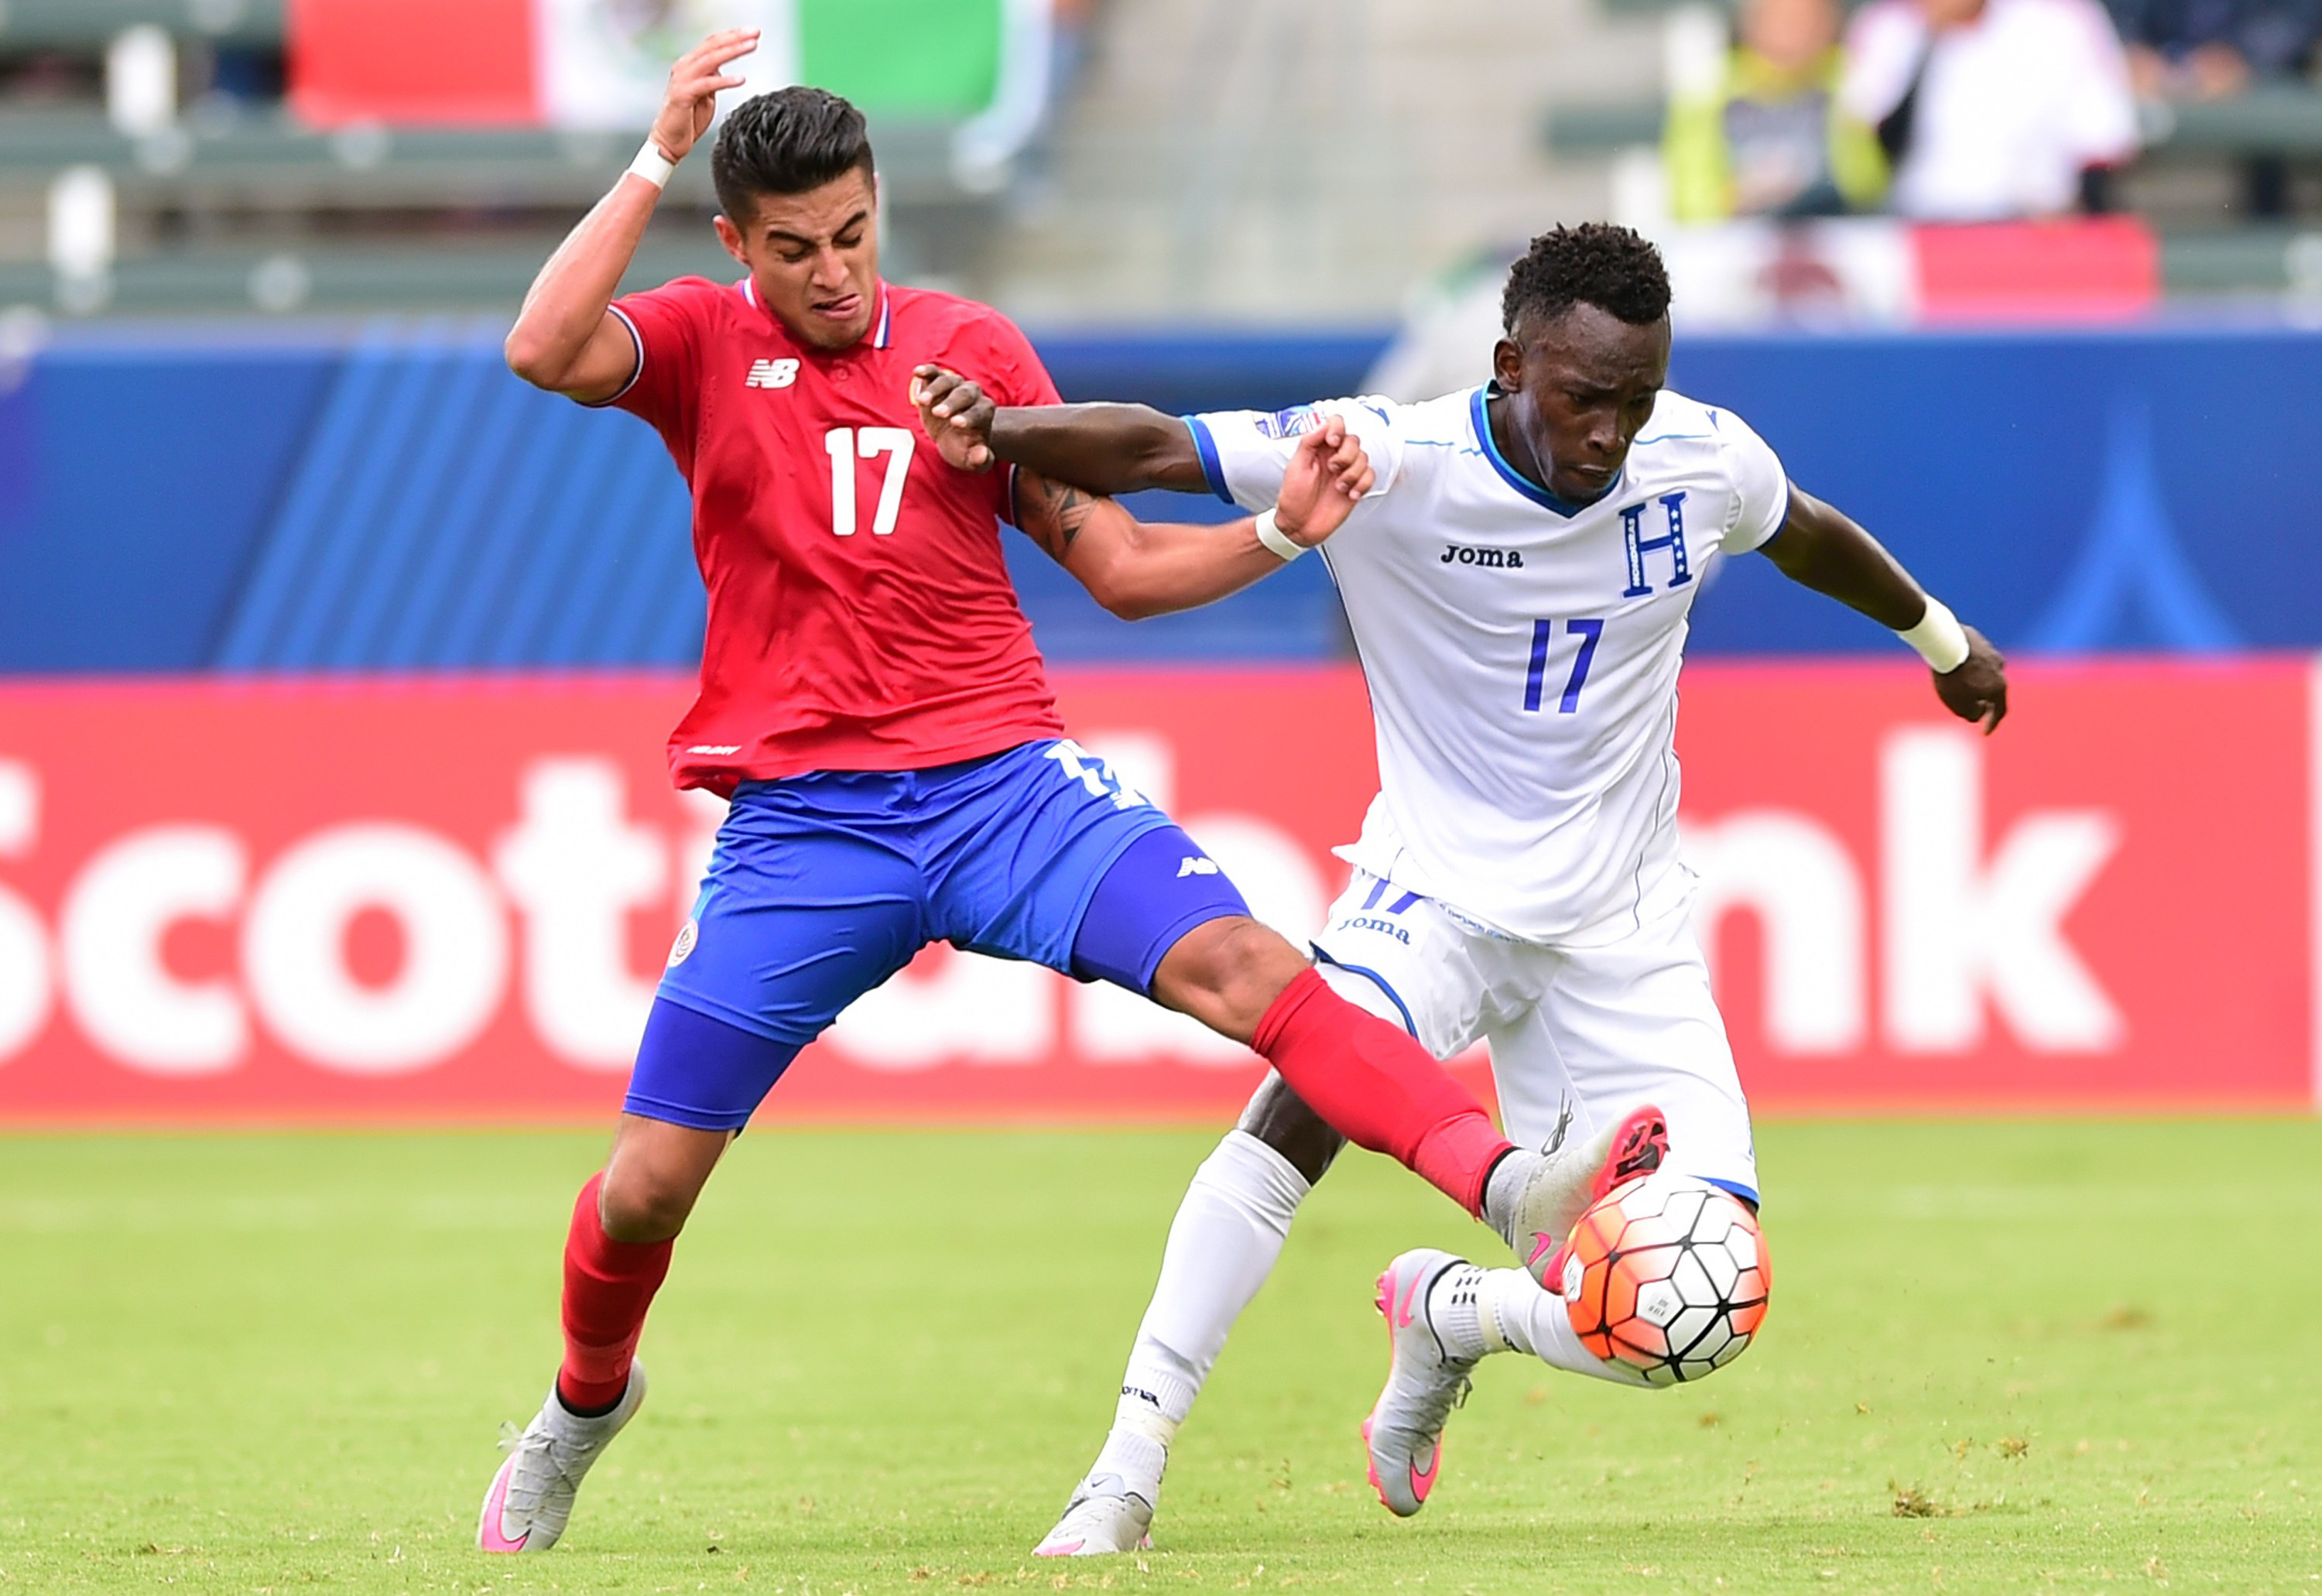 Costa Rica Ronald Matarrita ruled out of World Cup through injury